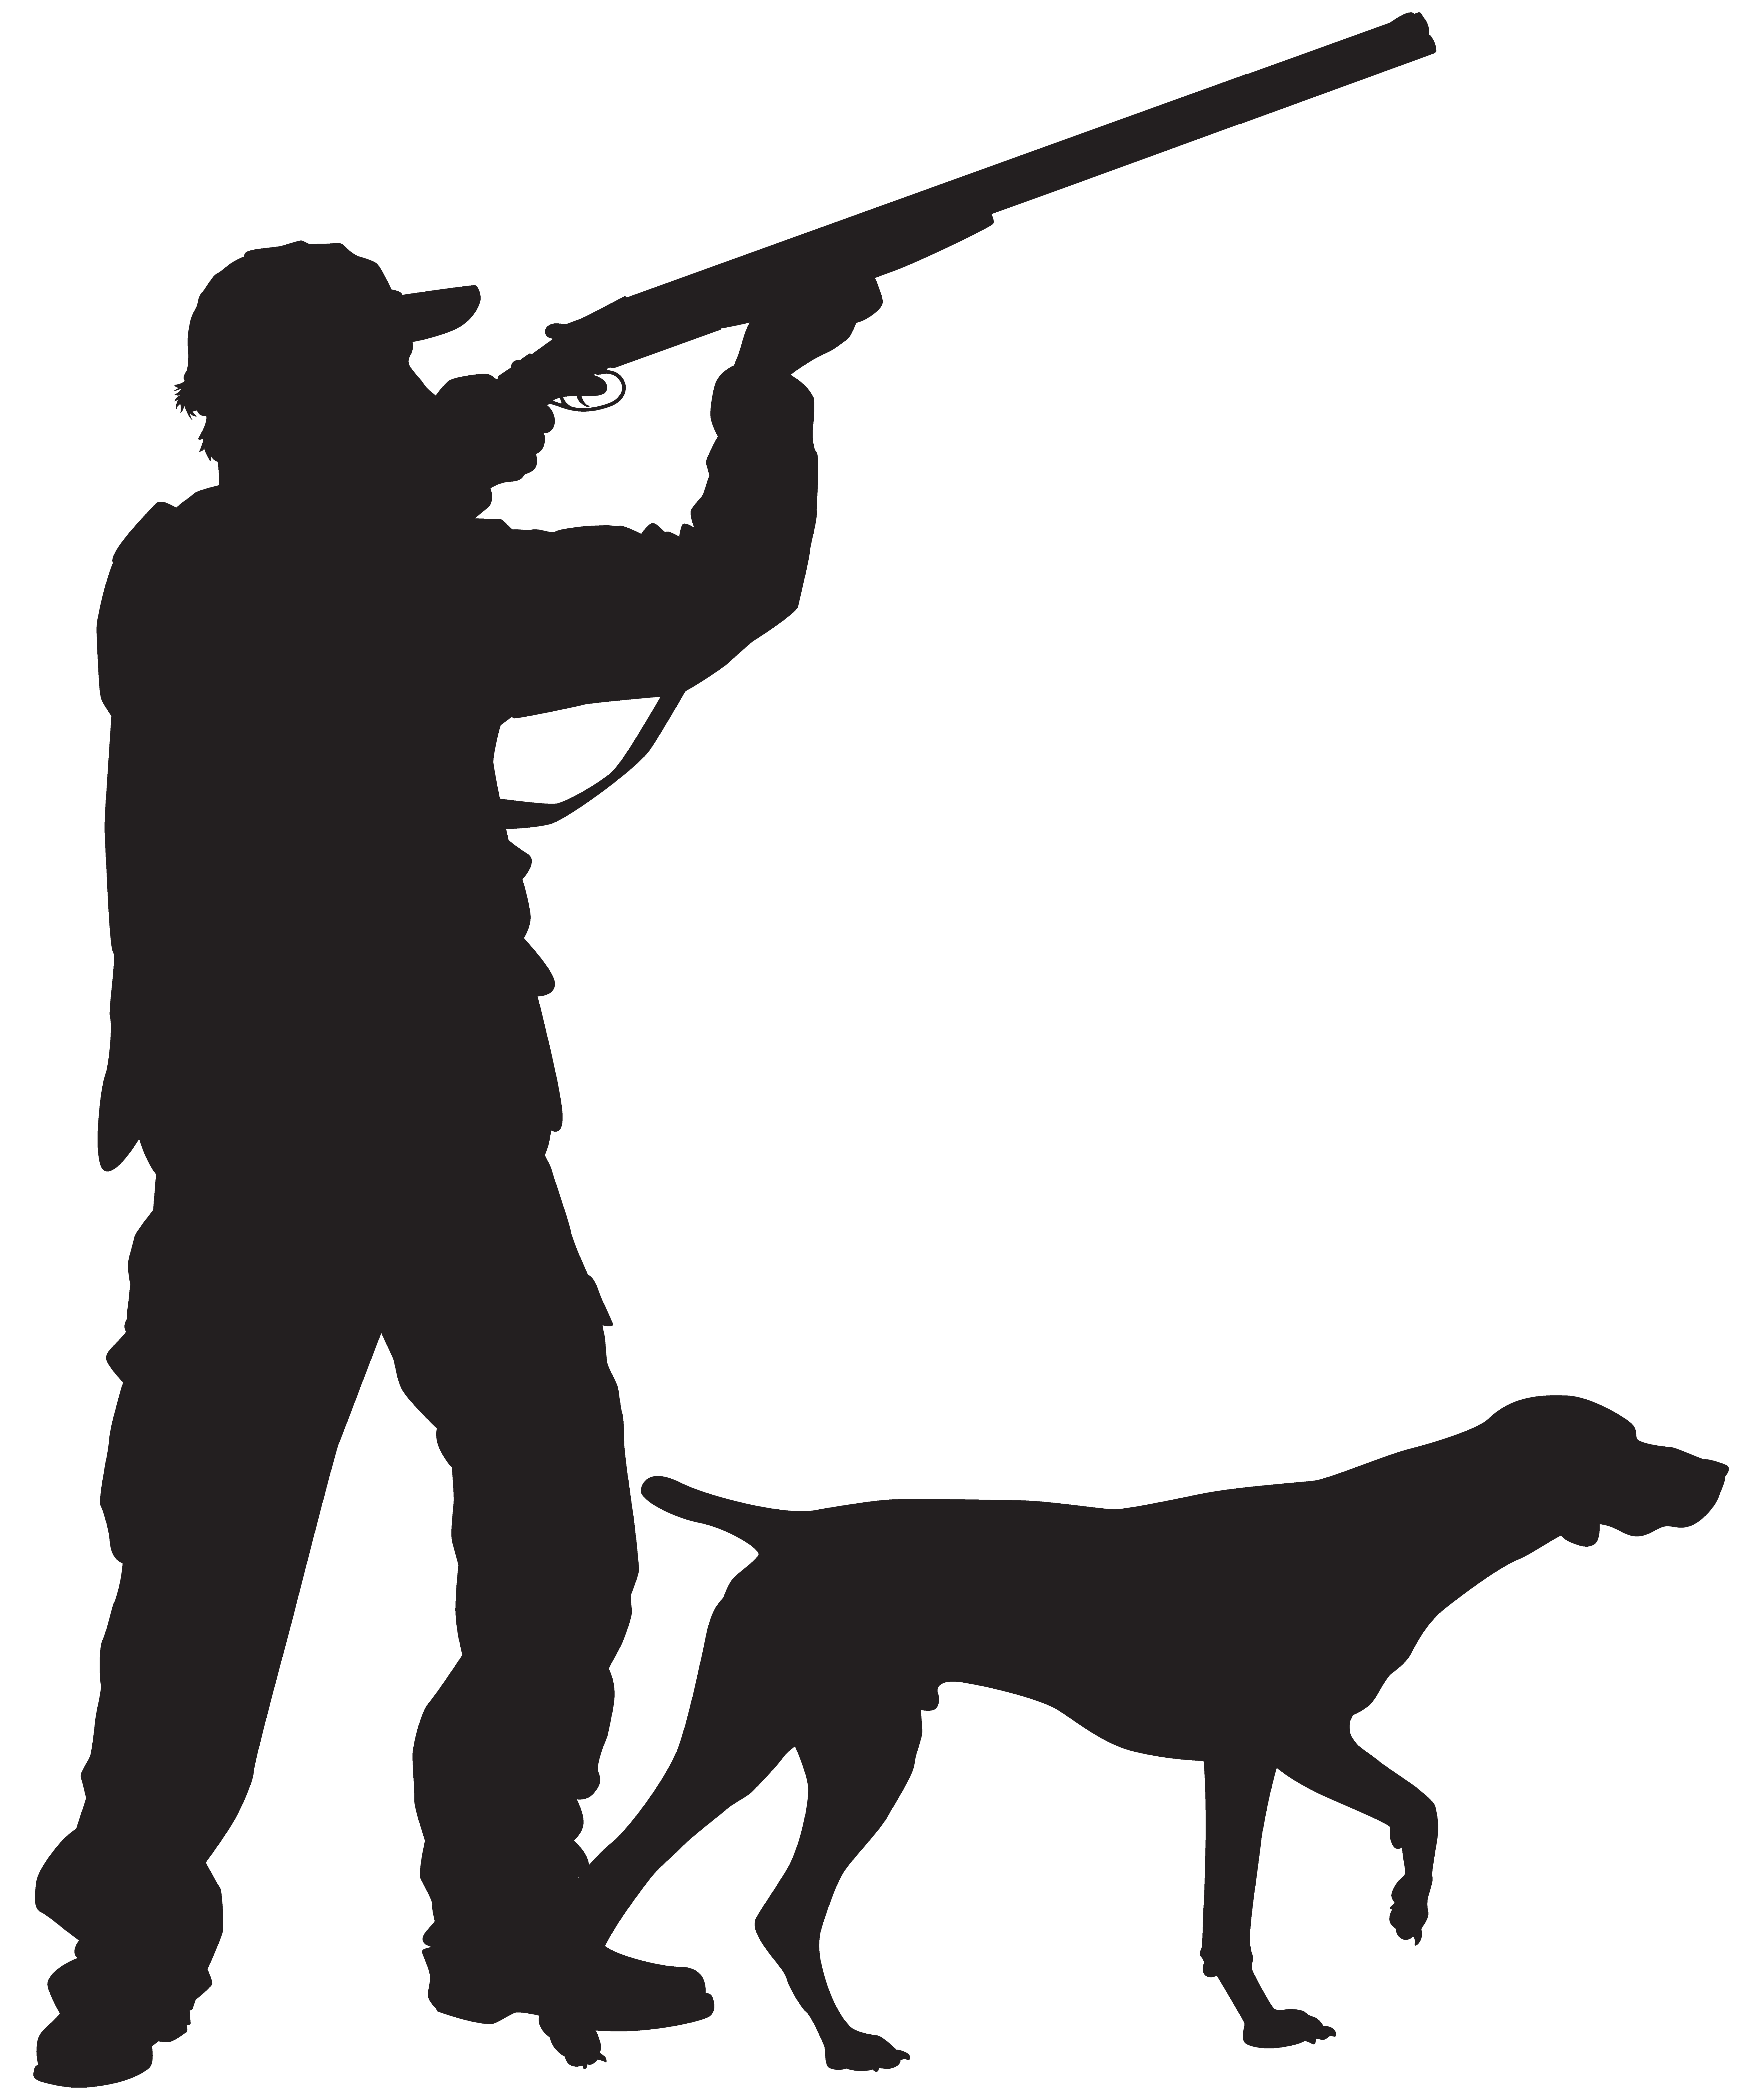 Hunting clipart mountain animal. Hunter with dog silhouette